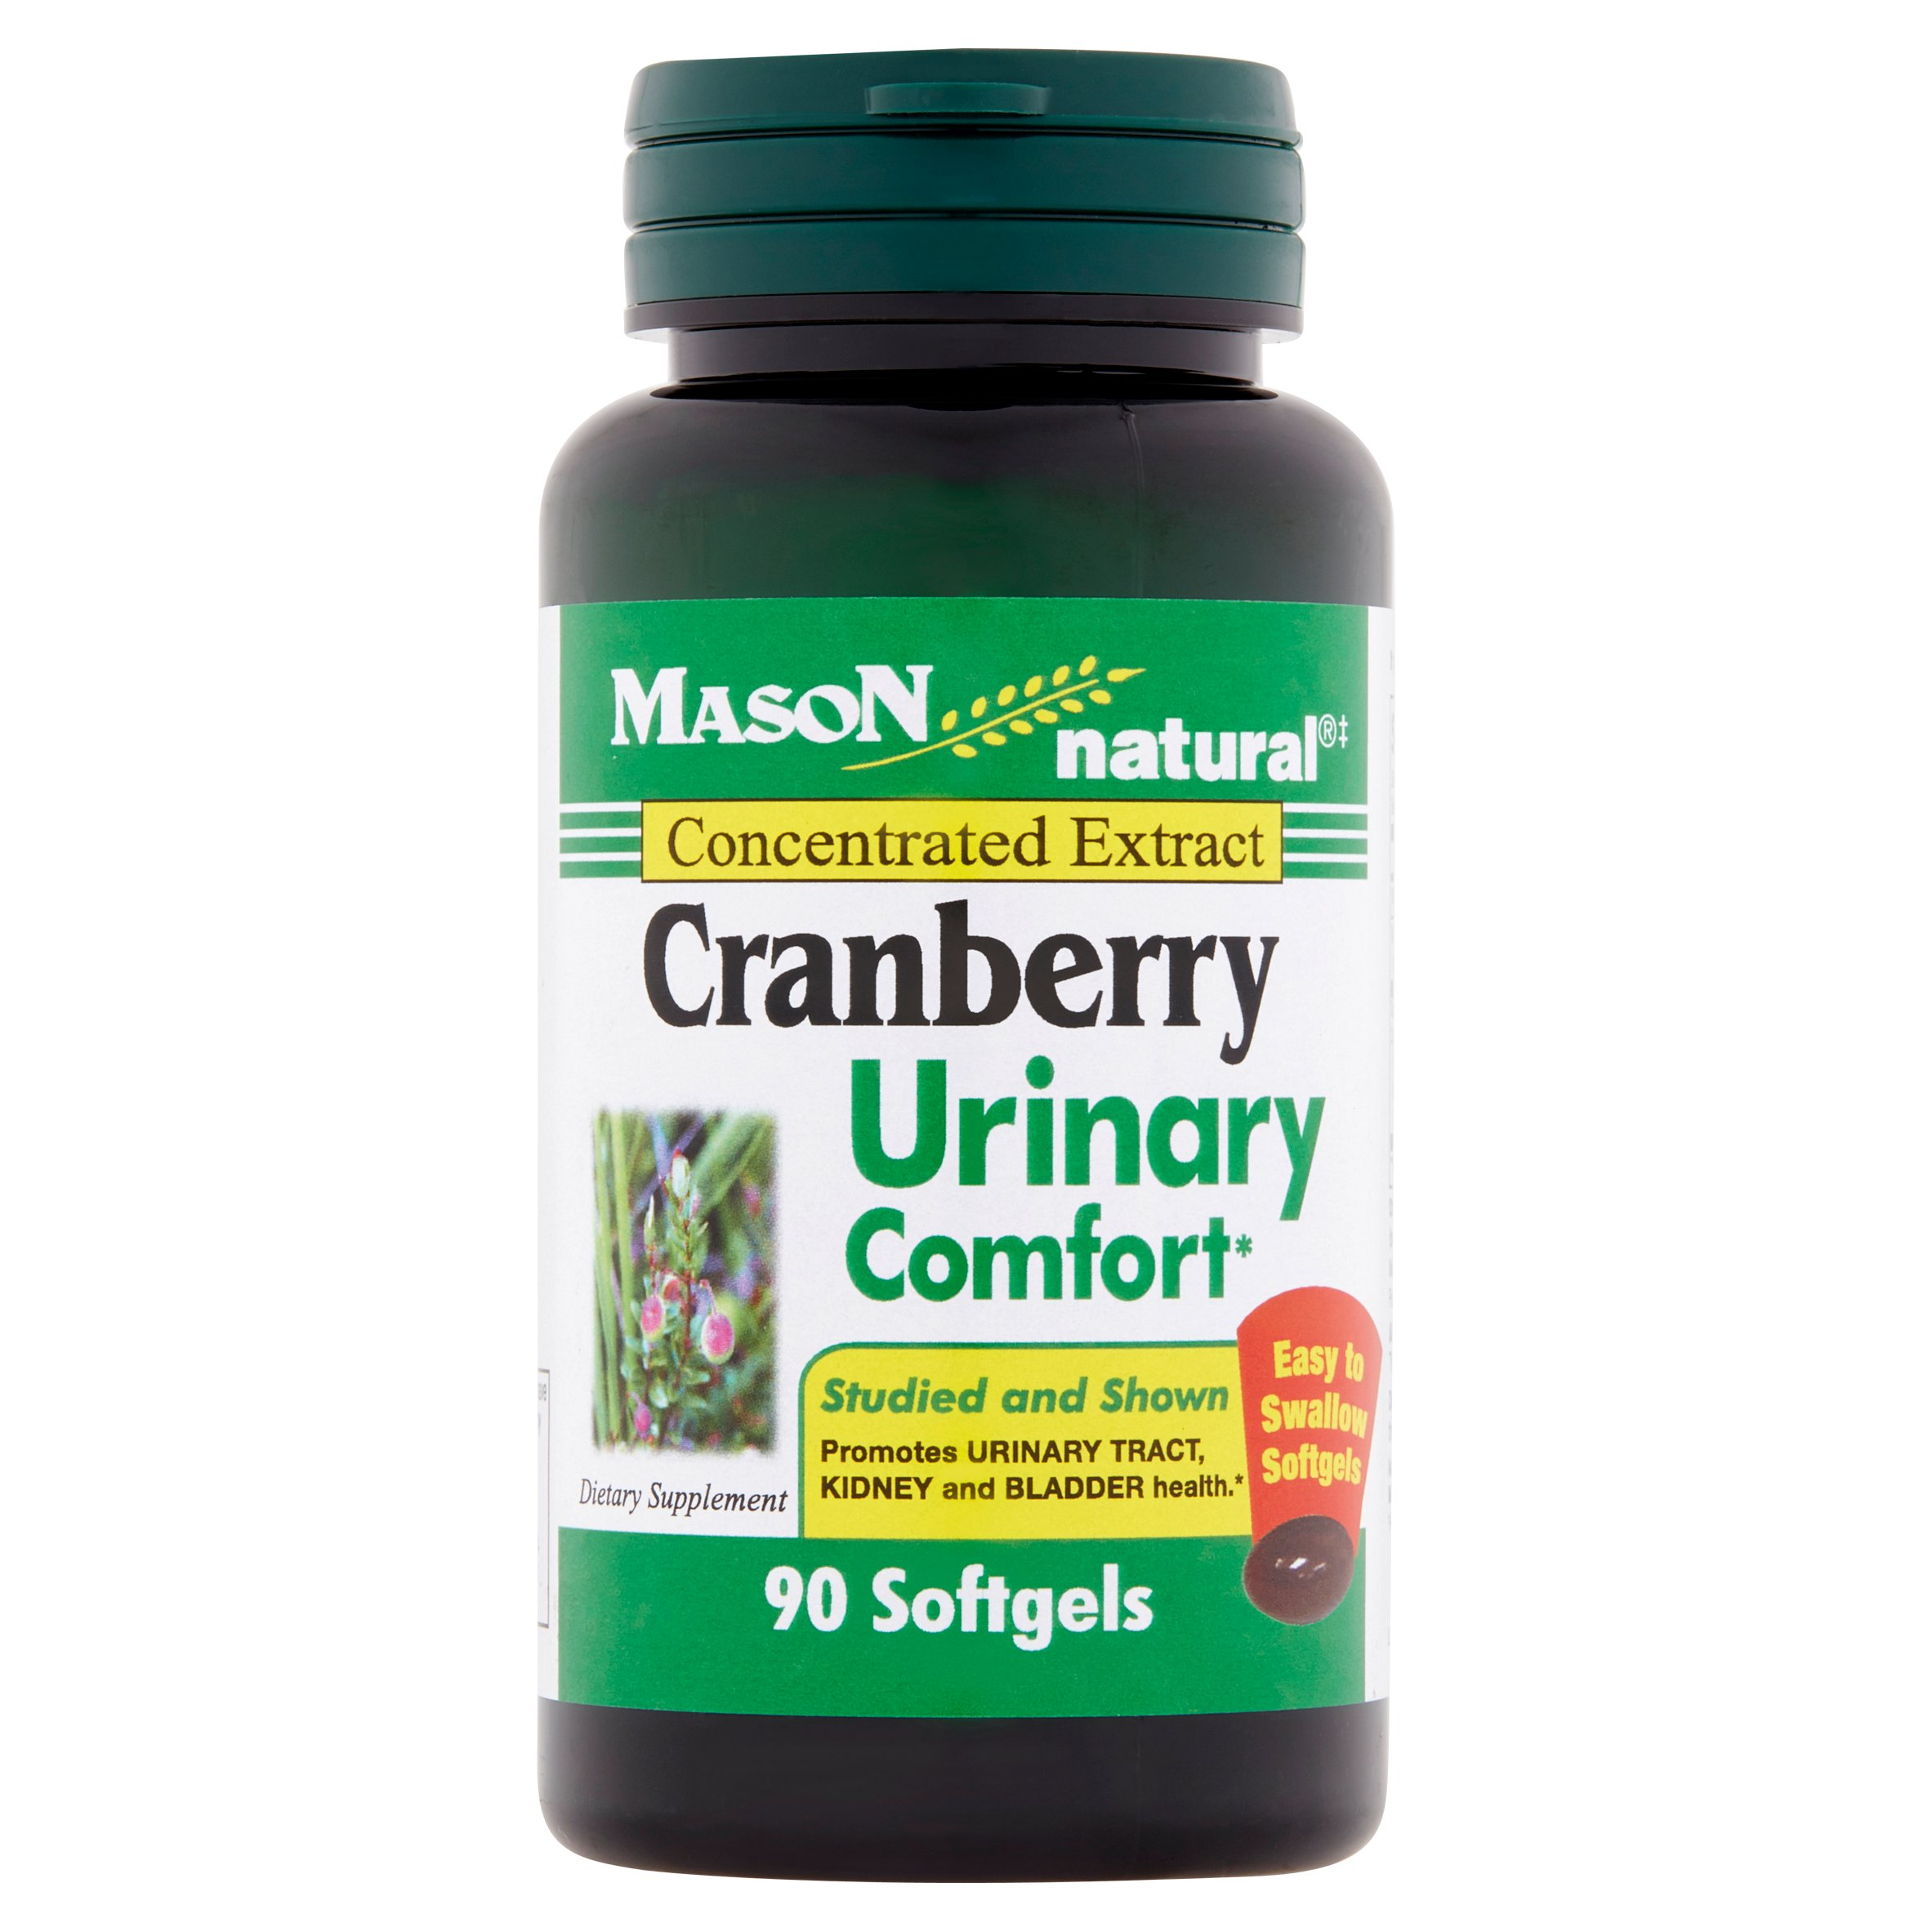 Mason Natural Concentrated Extract Cranberry Softgels, 90 count